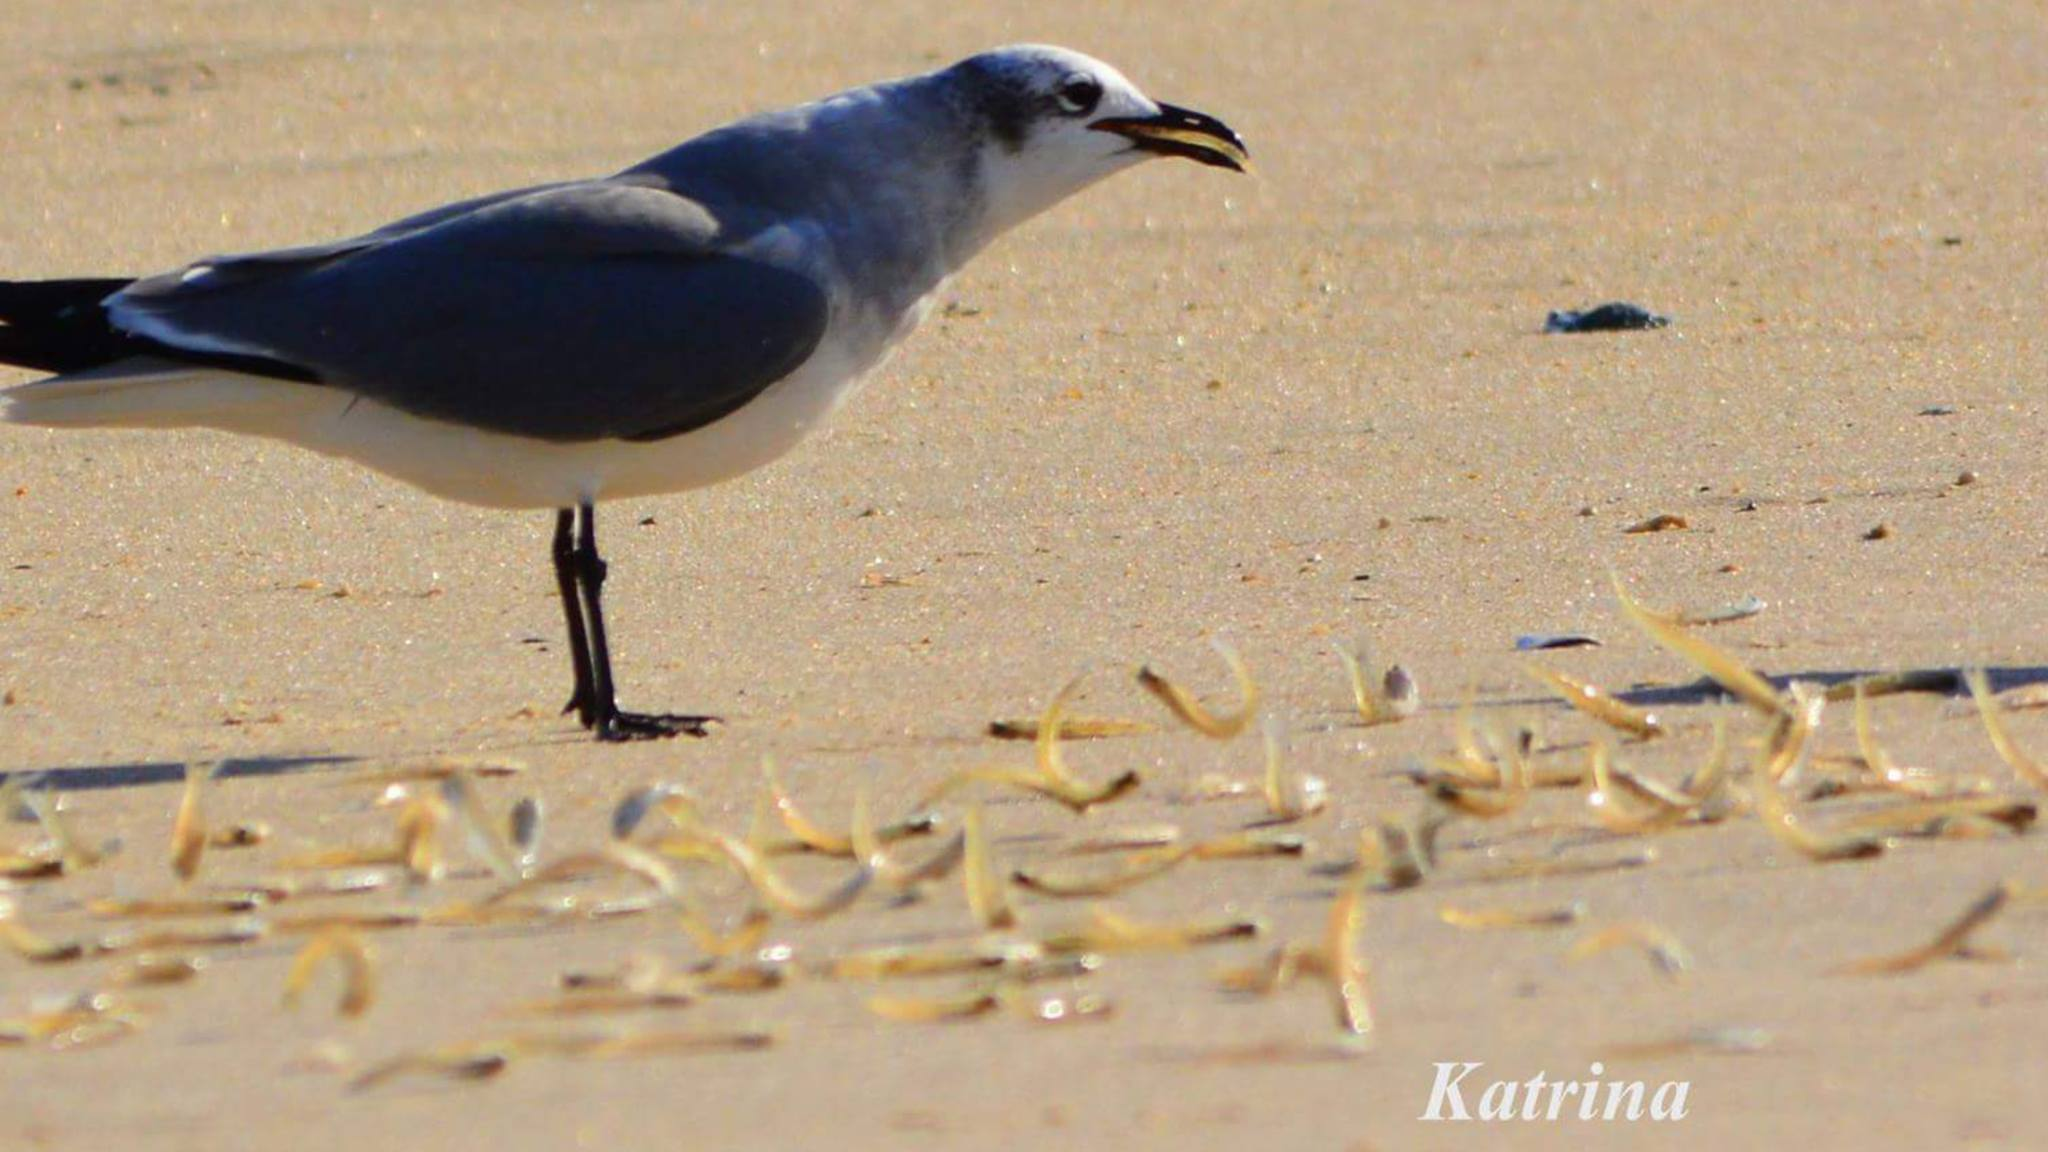 baitfish washing up on beach, delaware, sussex county, surf fihsing, bluefish,fall run, gull eating baitfish